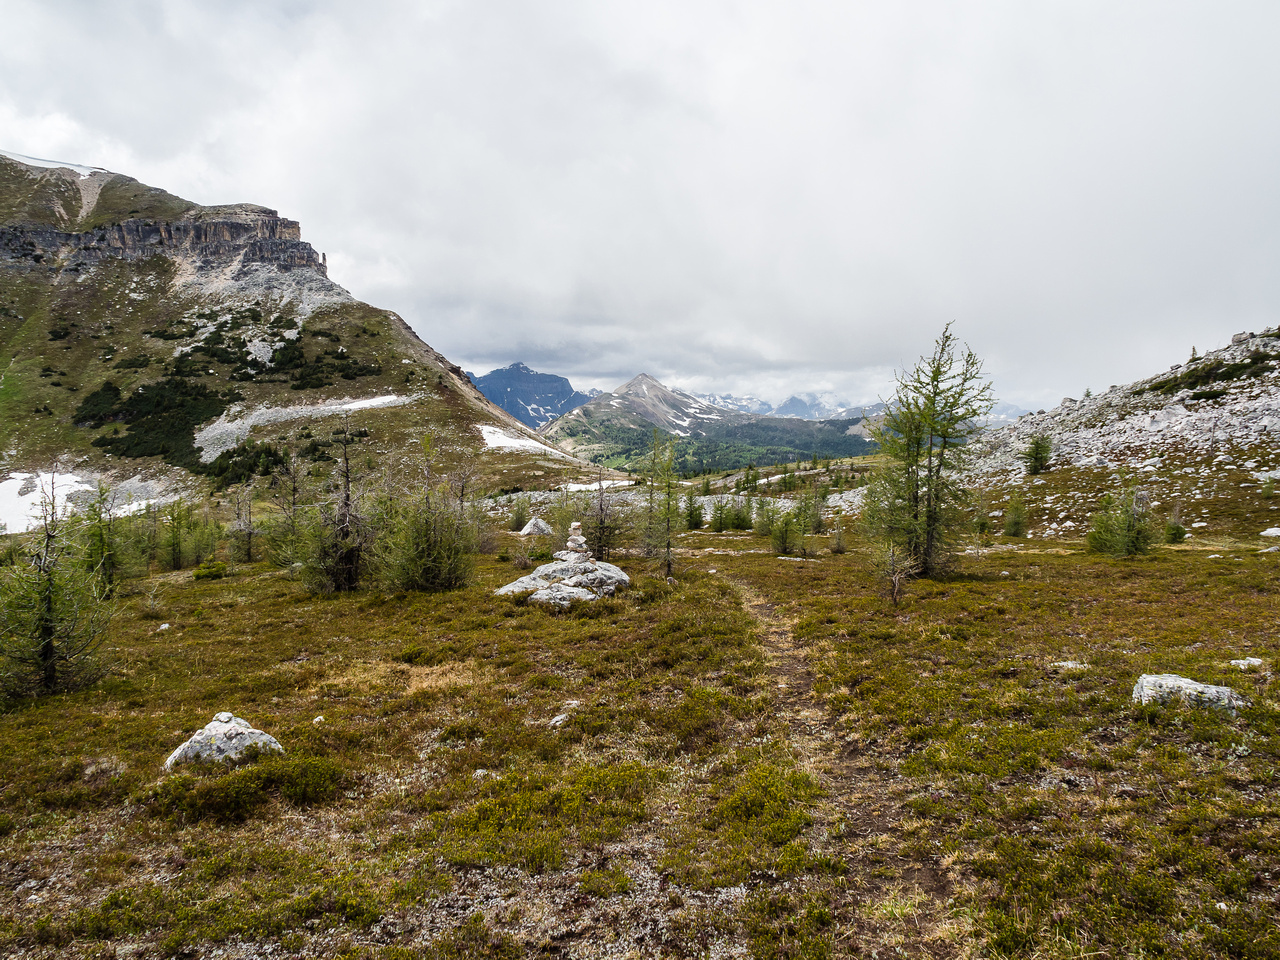 Looking back towards Citadel Pass from the faint trail.